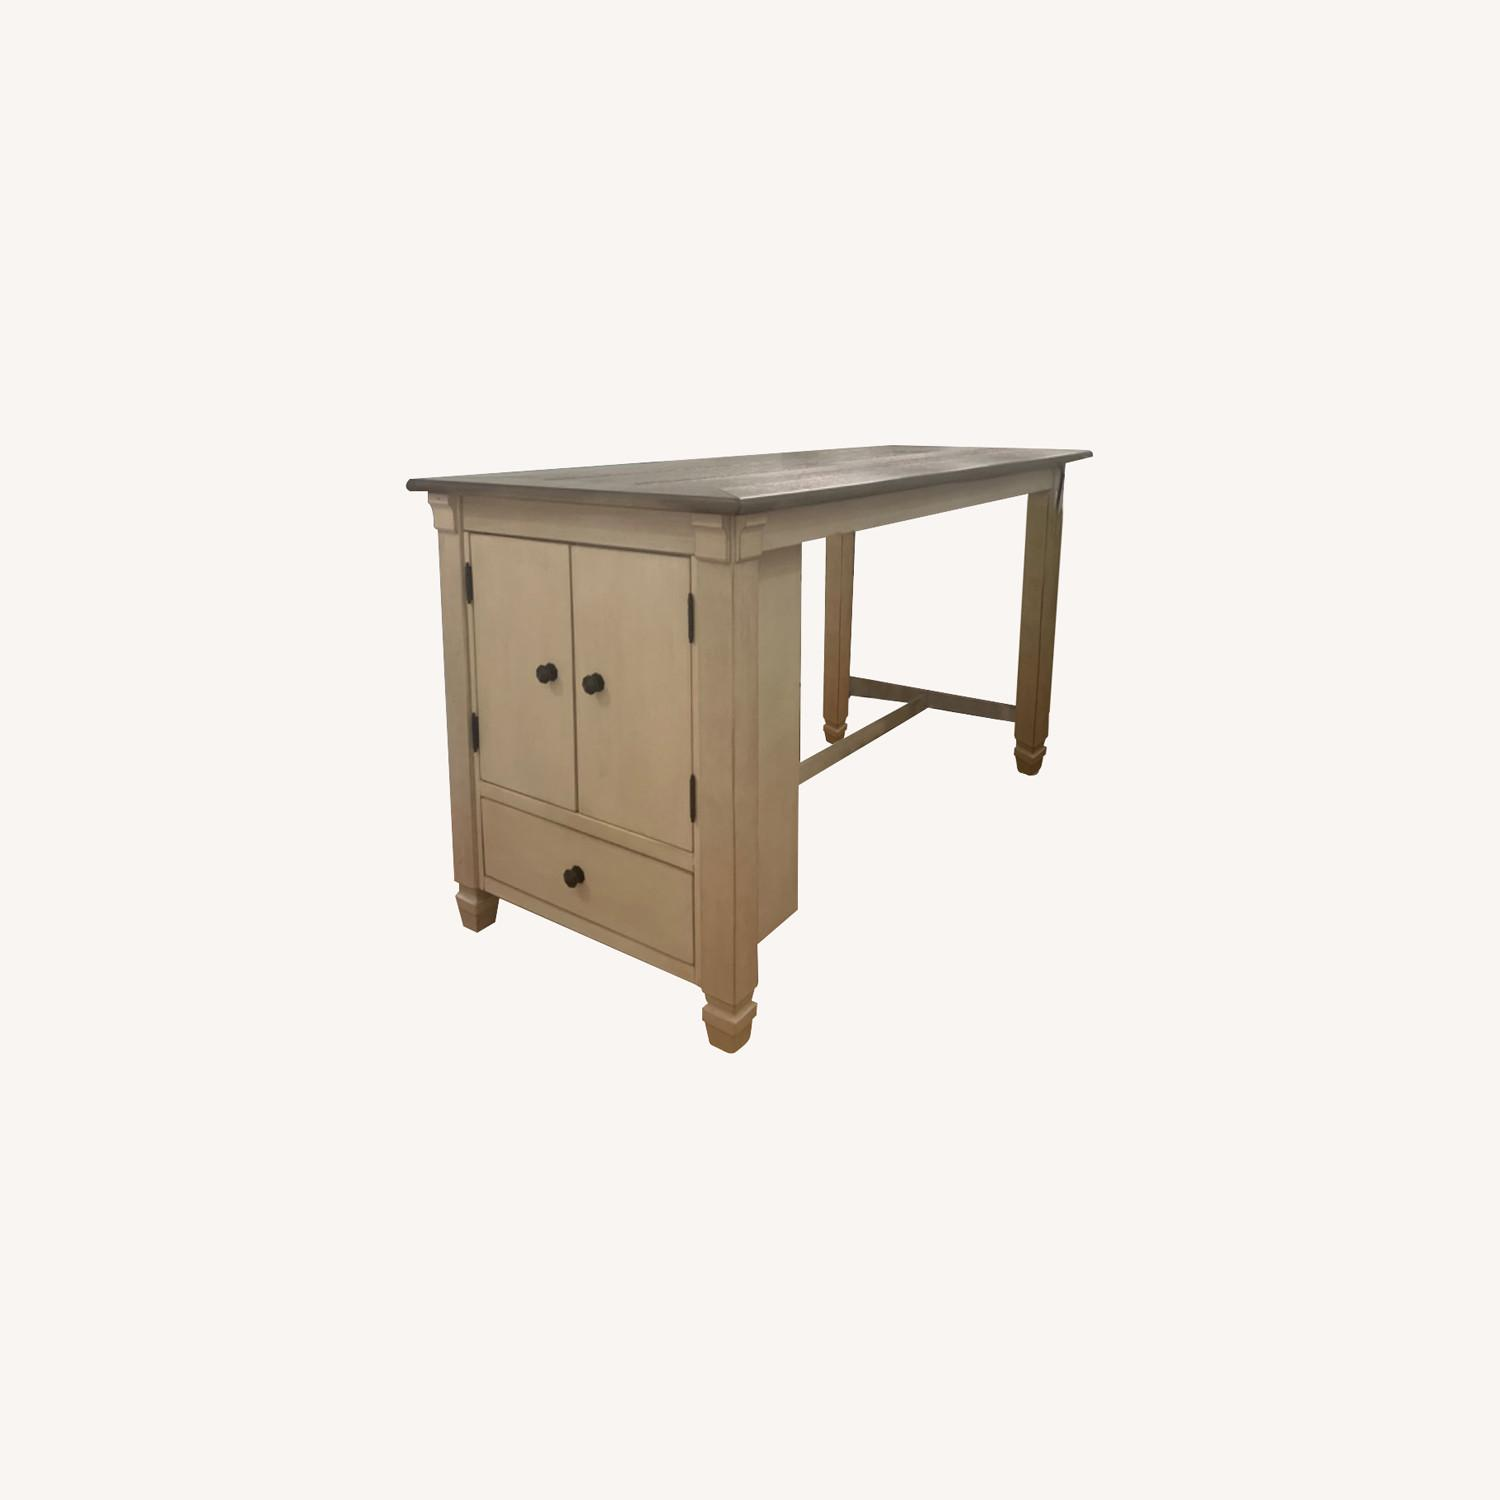 Ashley Furniture Counter Height Table with Storage - image-0